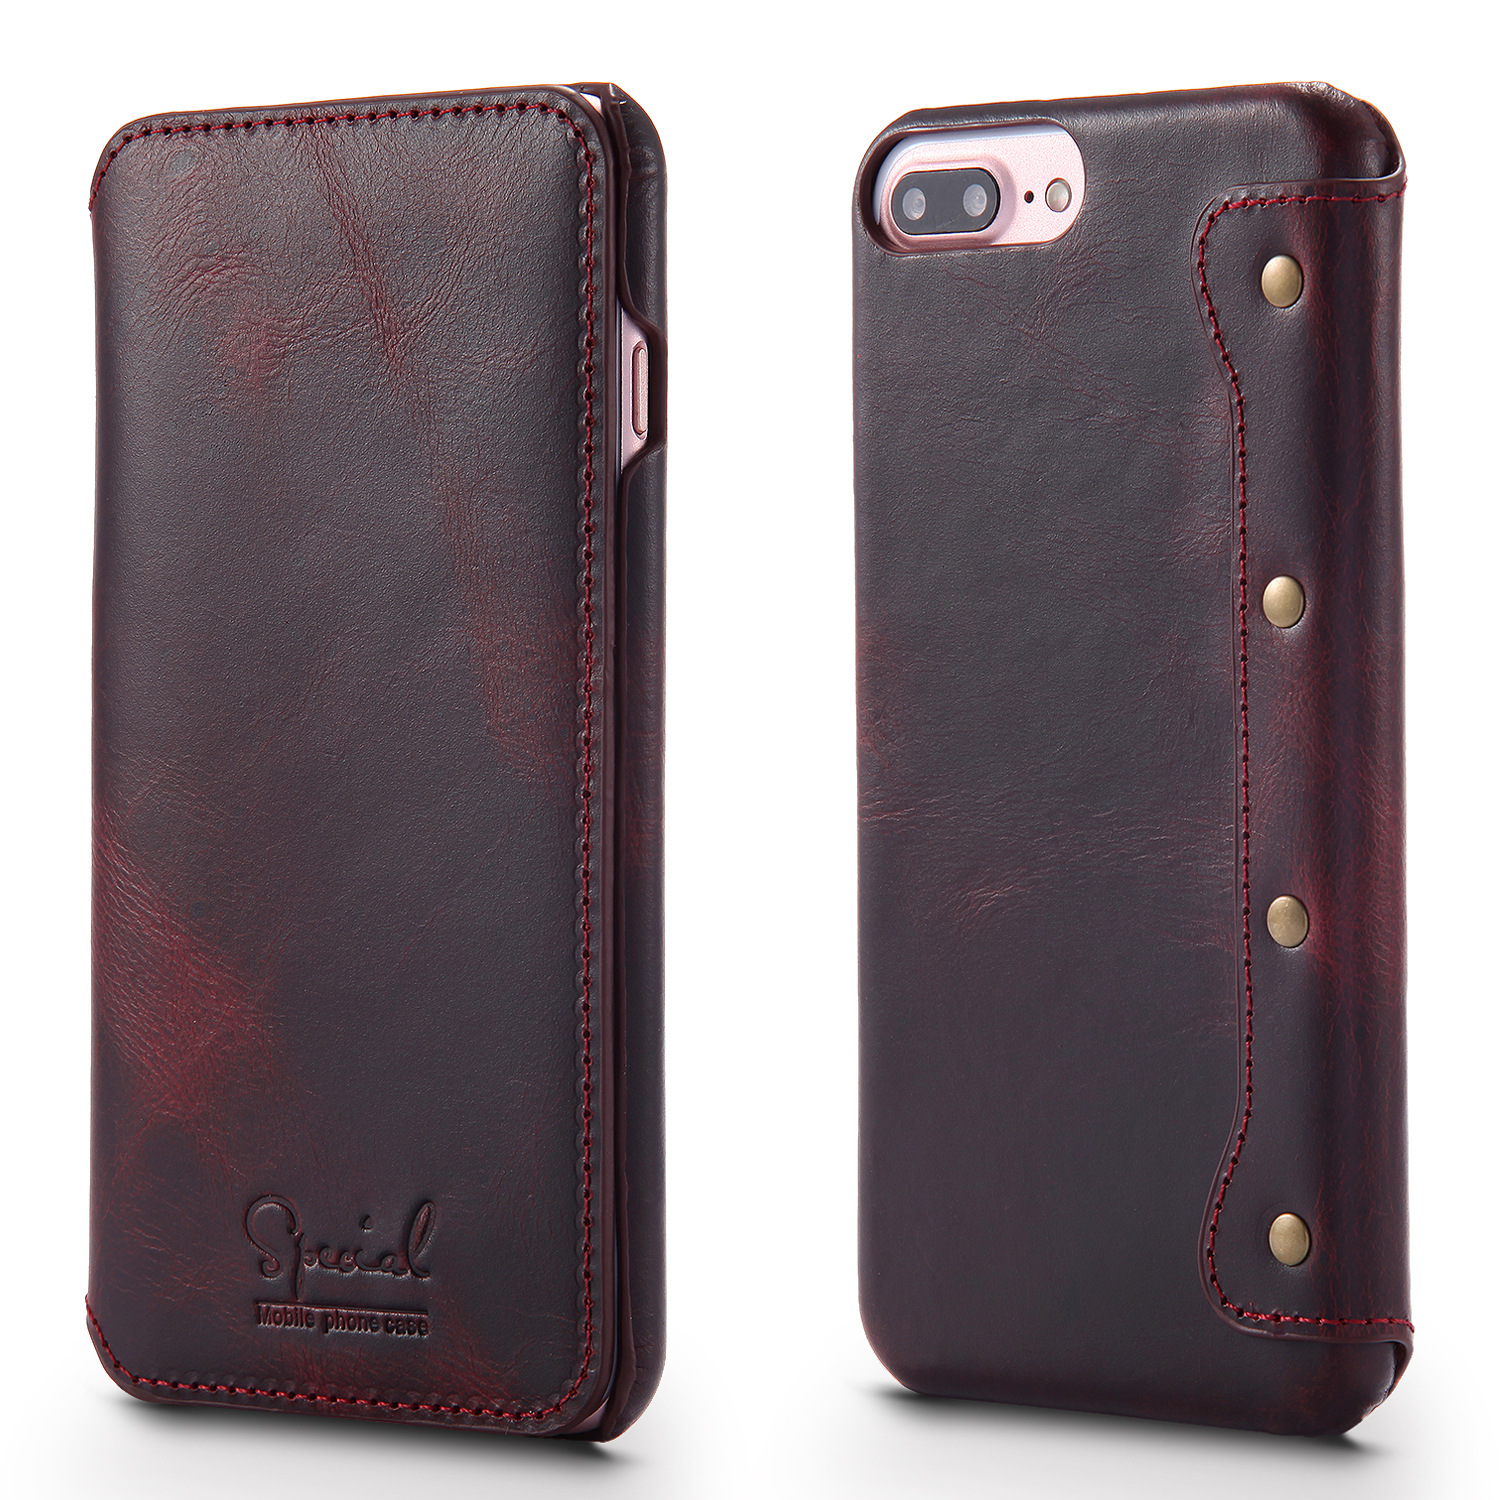 4 Colors Real Genuine Leather Phone Cover For New Iphone SE 4.7\'\' 2020 Flip Case With Card Pocket Vintage Retro Business Bags